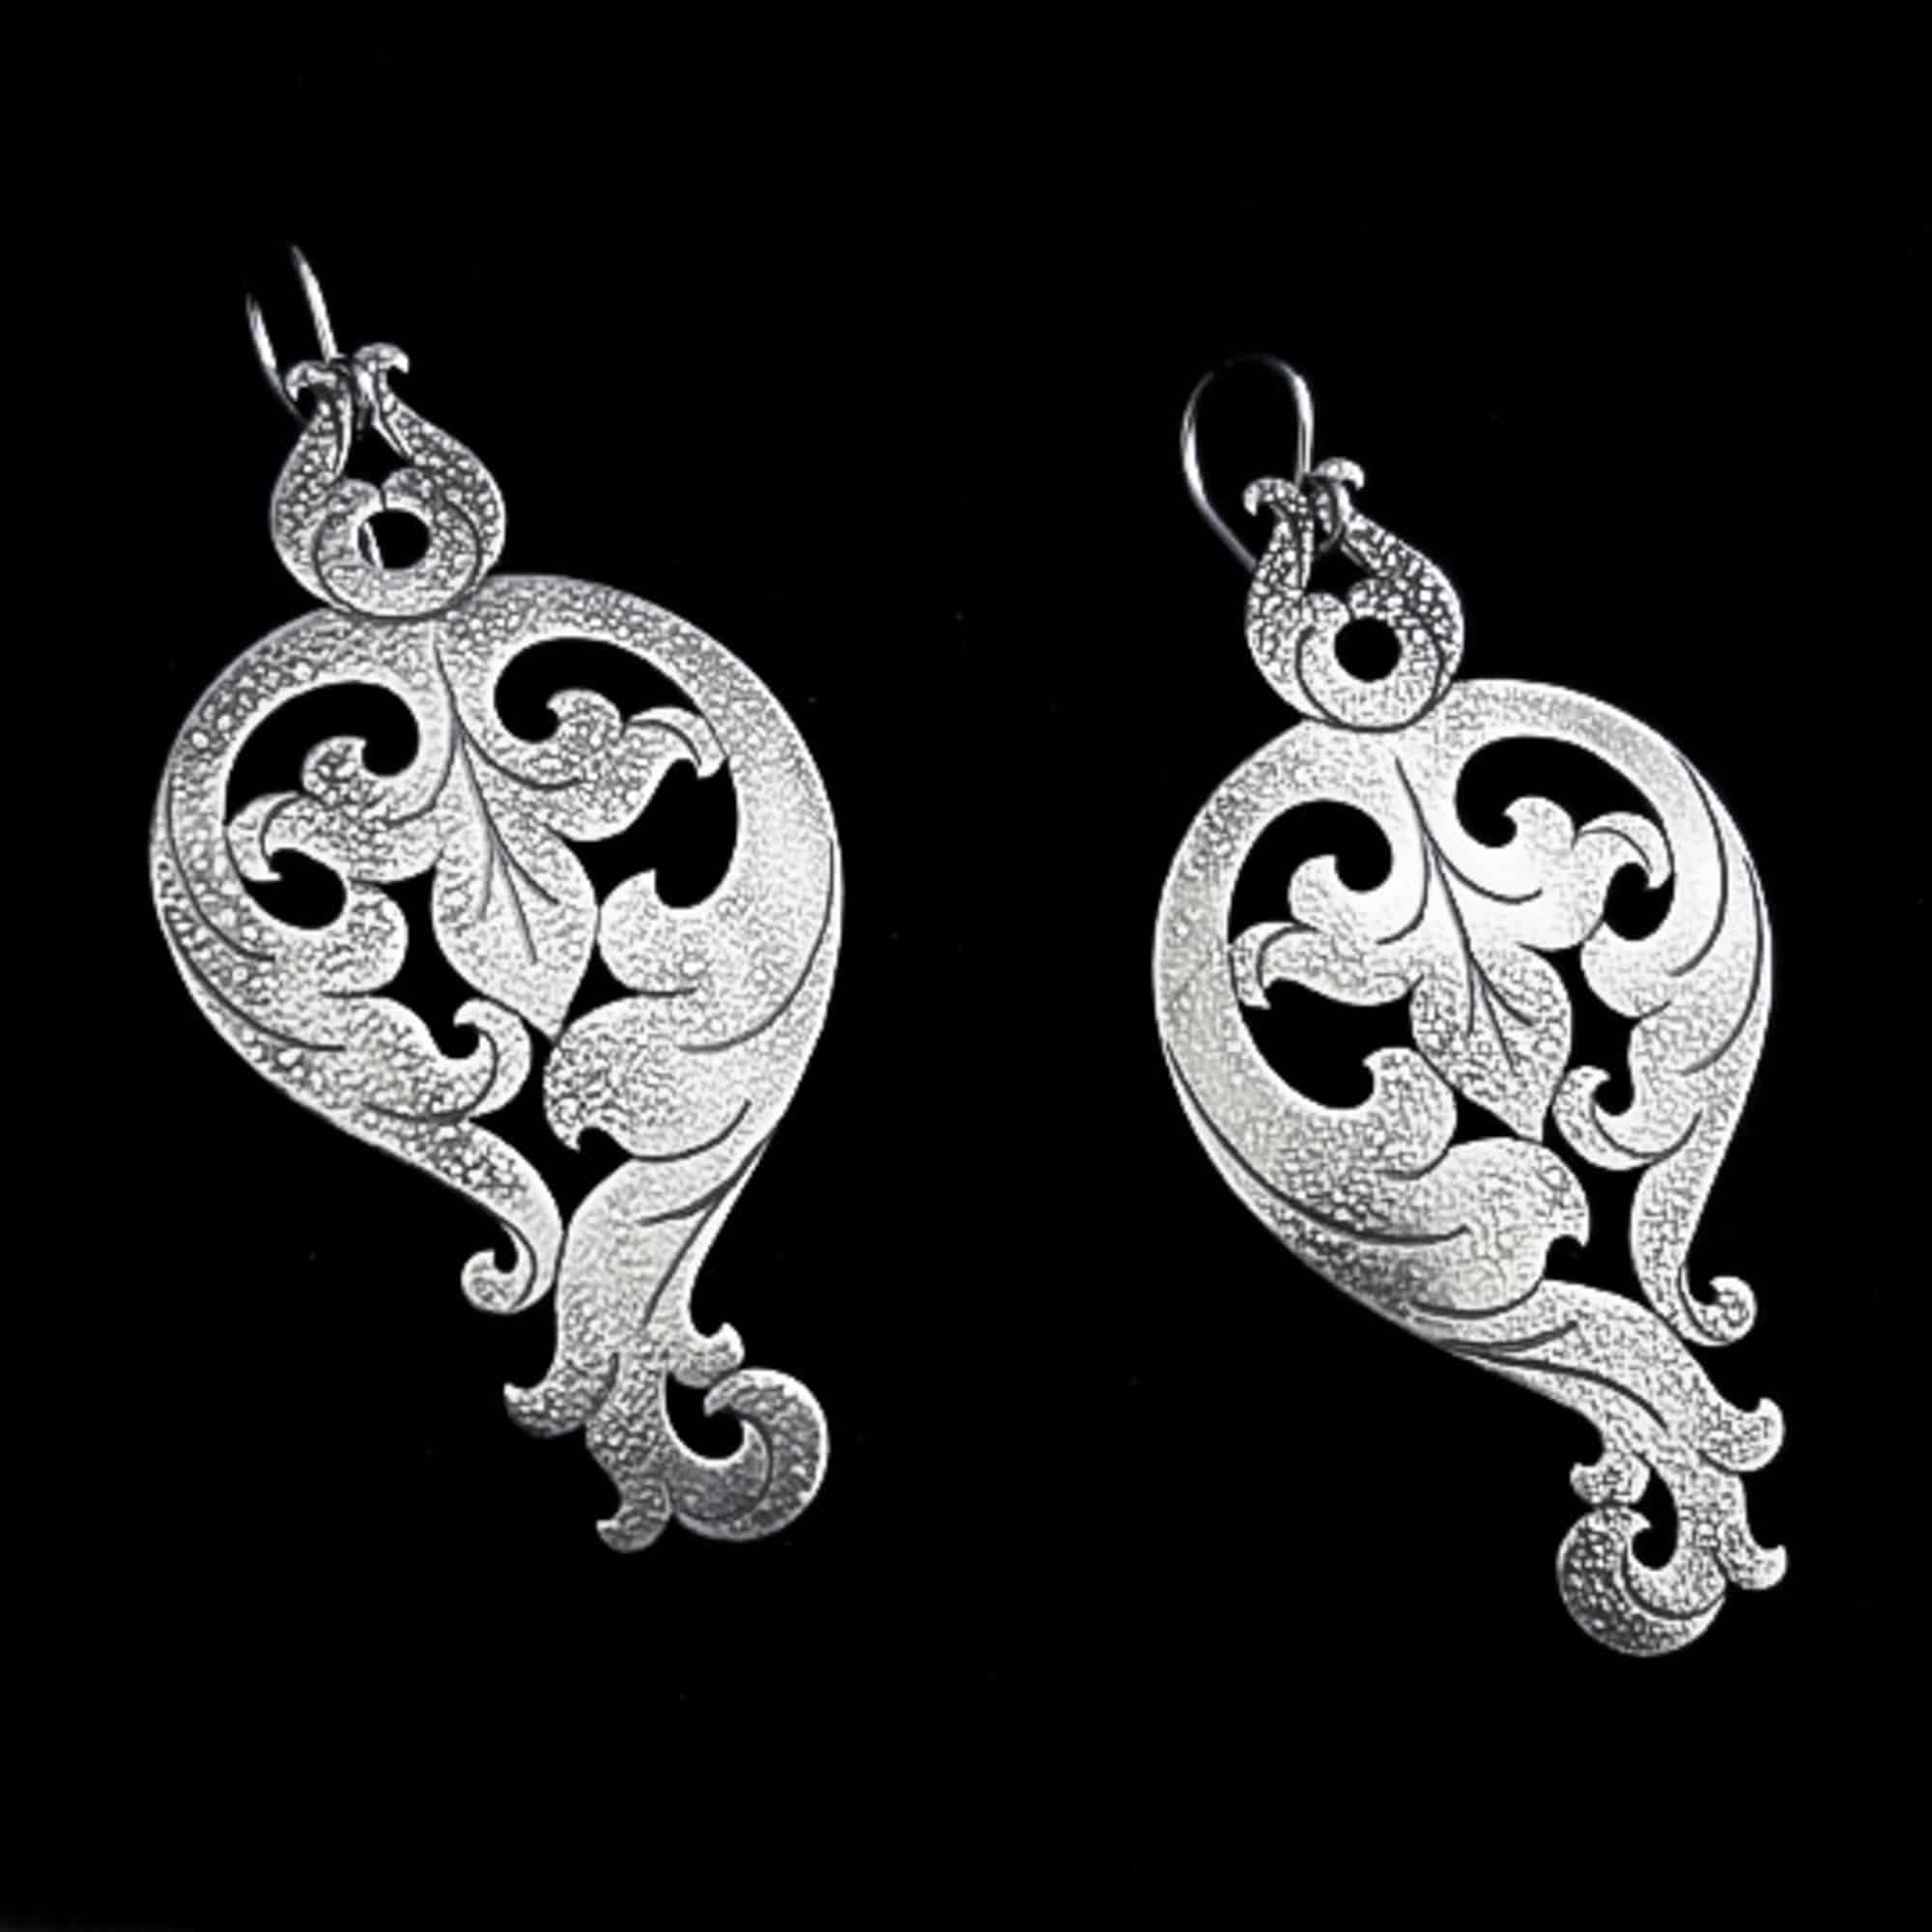 Baroque Soiree – Silver Earrings By Skadi Jewellery Design